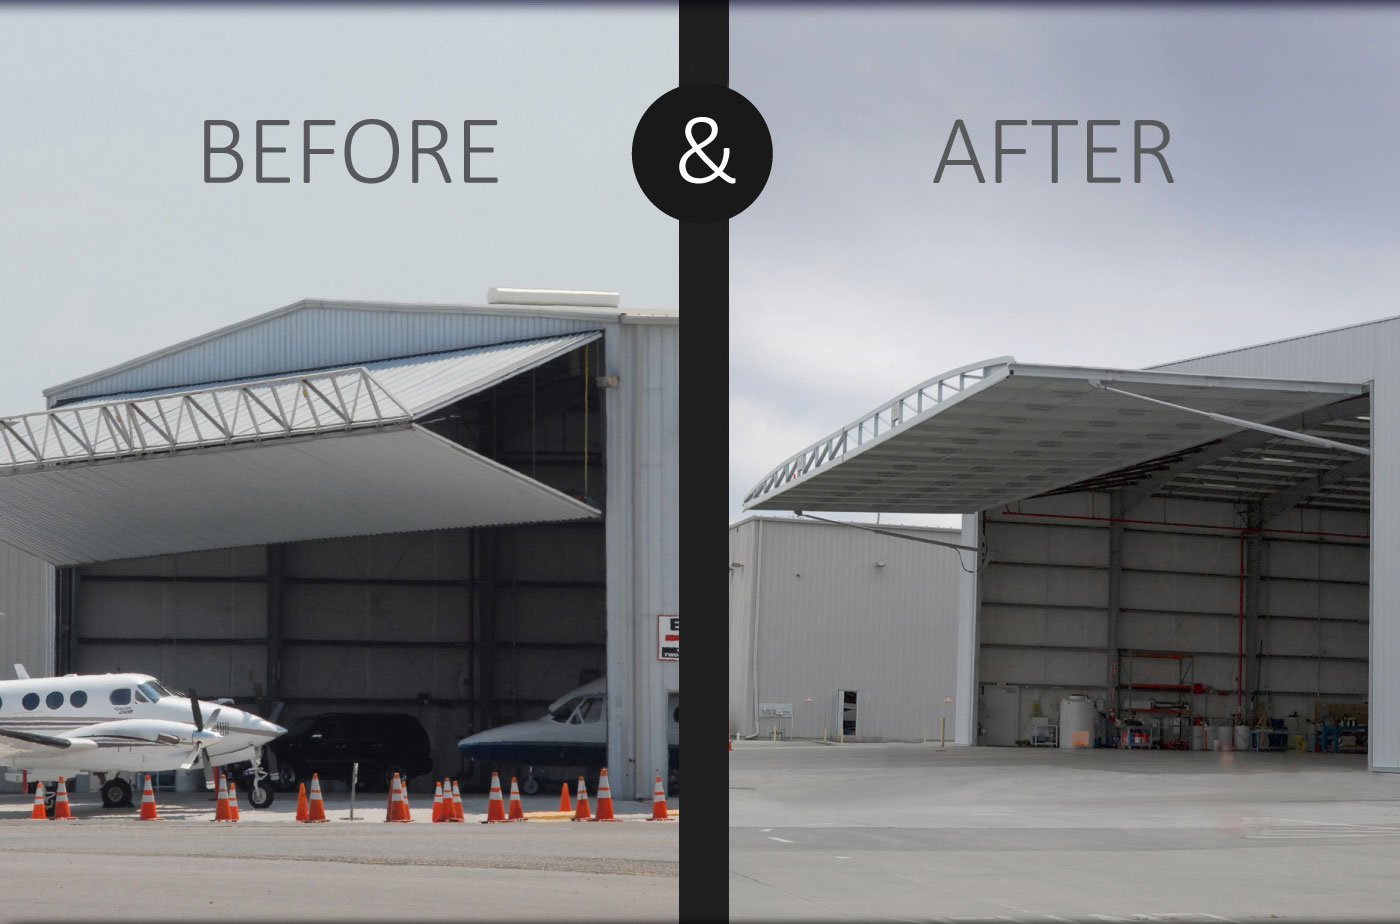 invest in your hangar by replacing your bifold door with a hydroswing hydraulic door